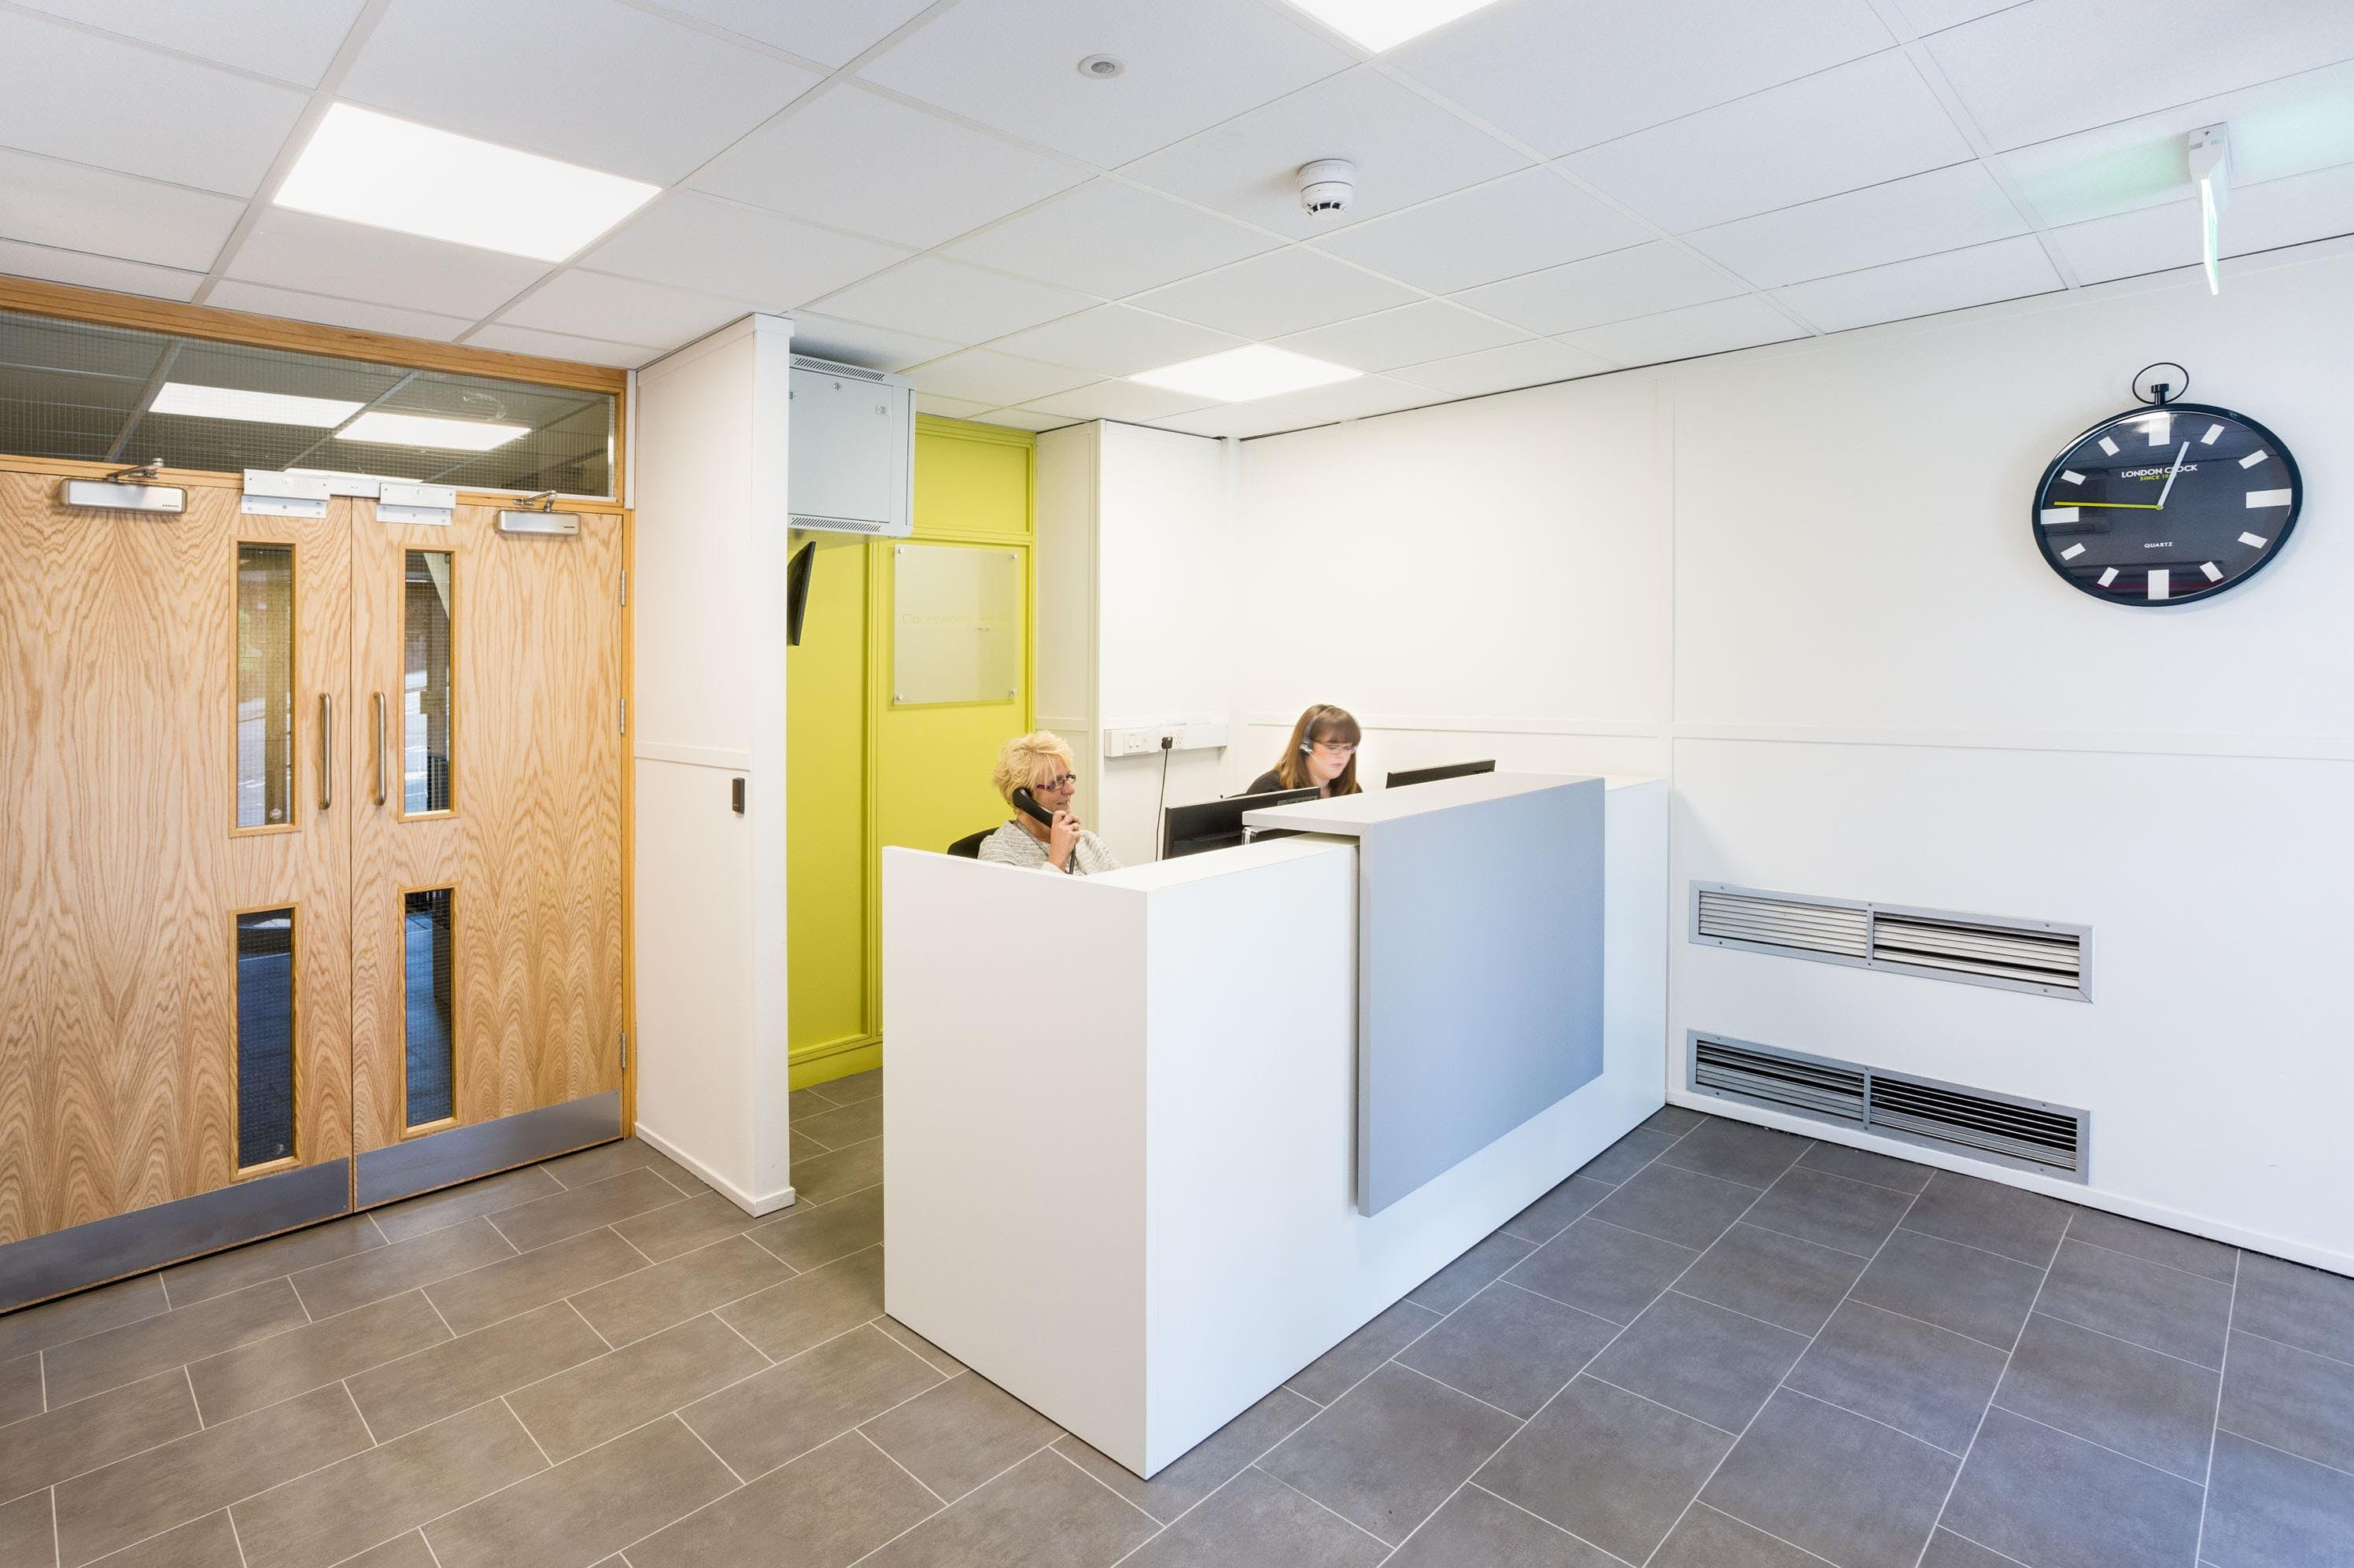 Courtwood House, Silver Street Head, Sheffield, Offices To Let - courtwood_05 - Copy.jpg